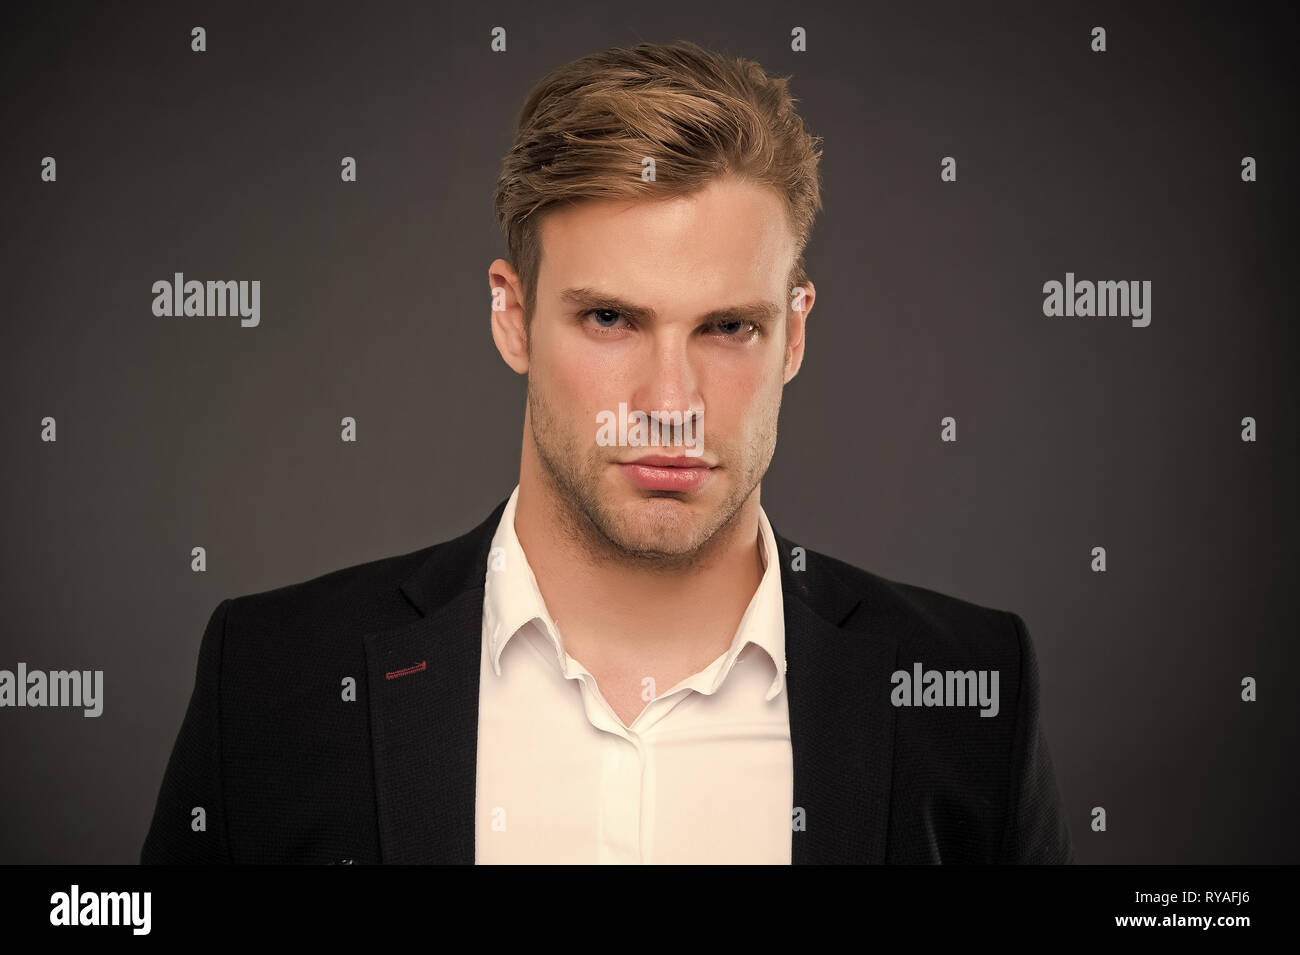 Taking life seriously. Man with bristle on unshaven face. Handsome businessman in formal wear. Barbershop salon and male beauty. Face of plenary leade - Stock Image